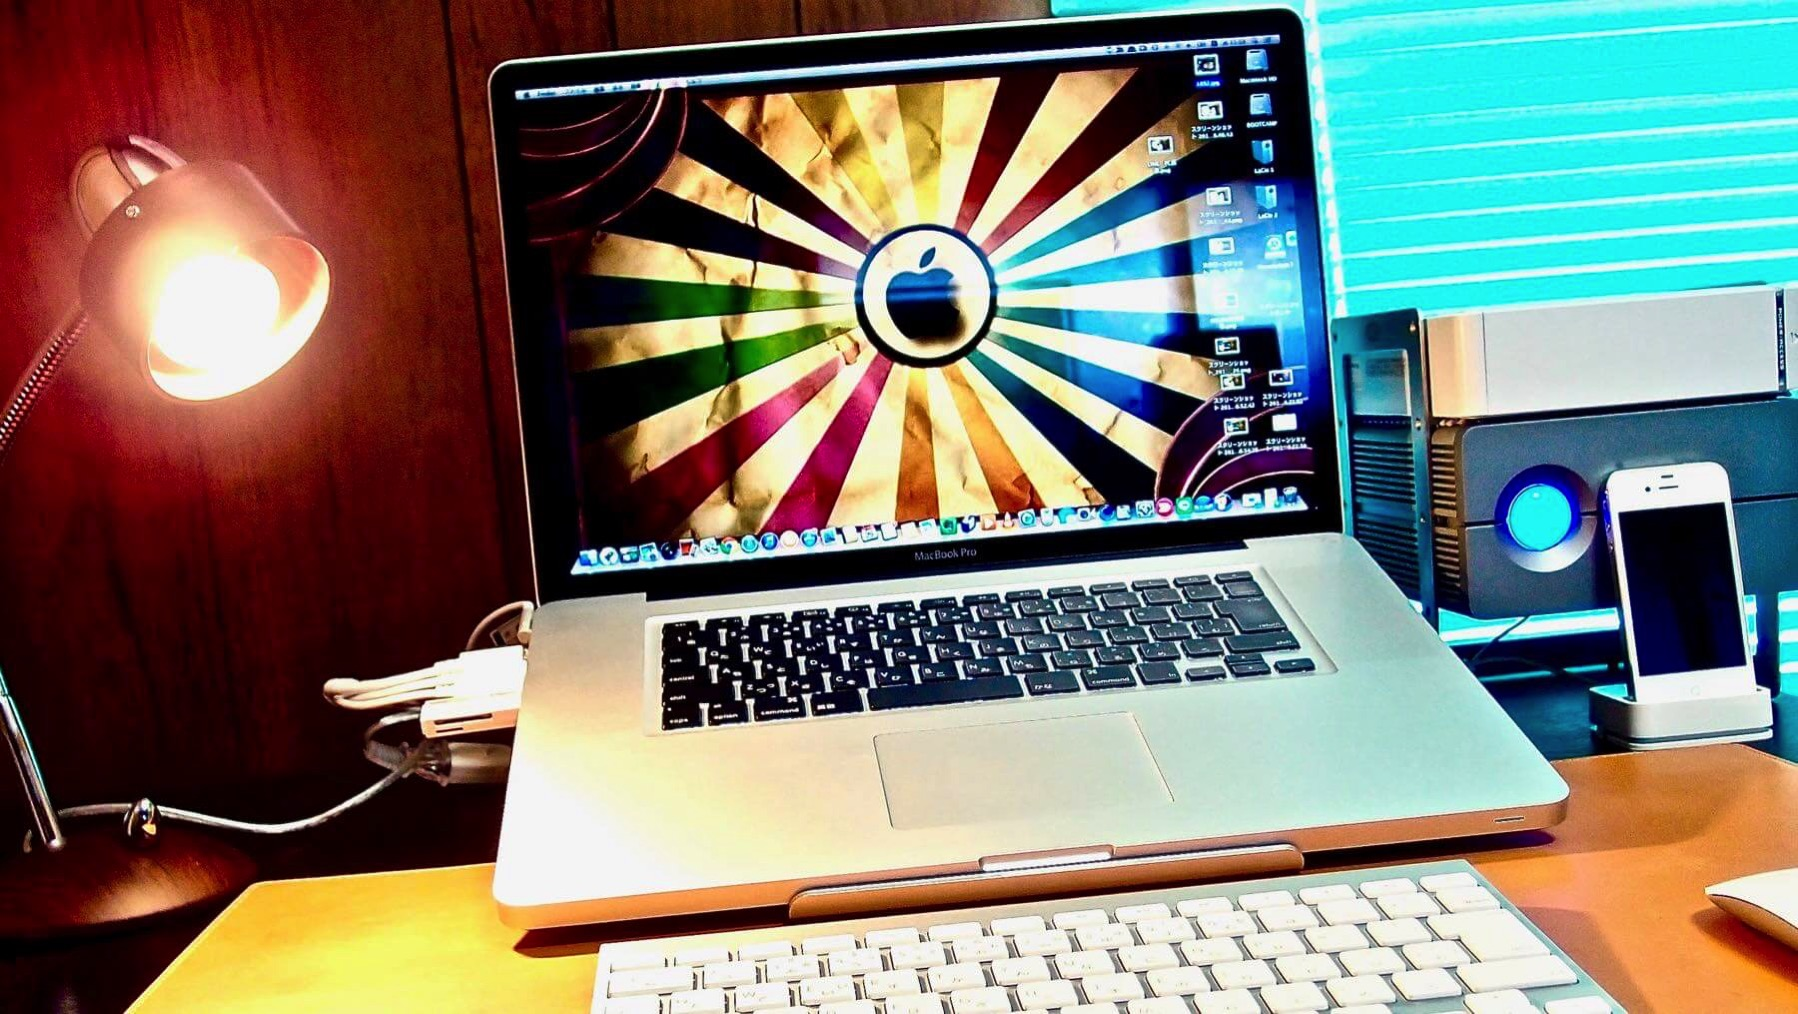 03 Macbook Pro 2011 17inch Apple wallpaper